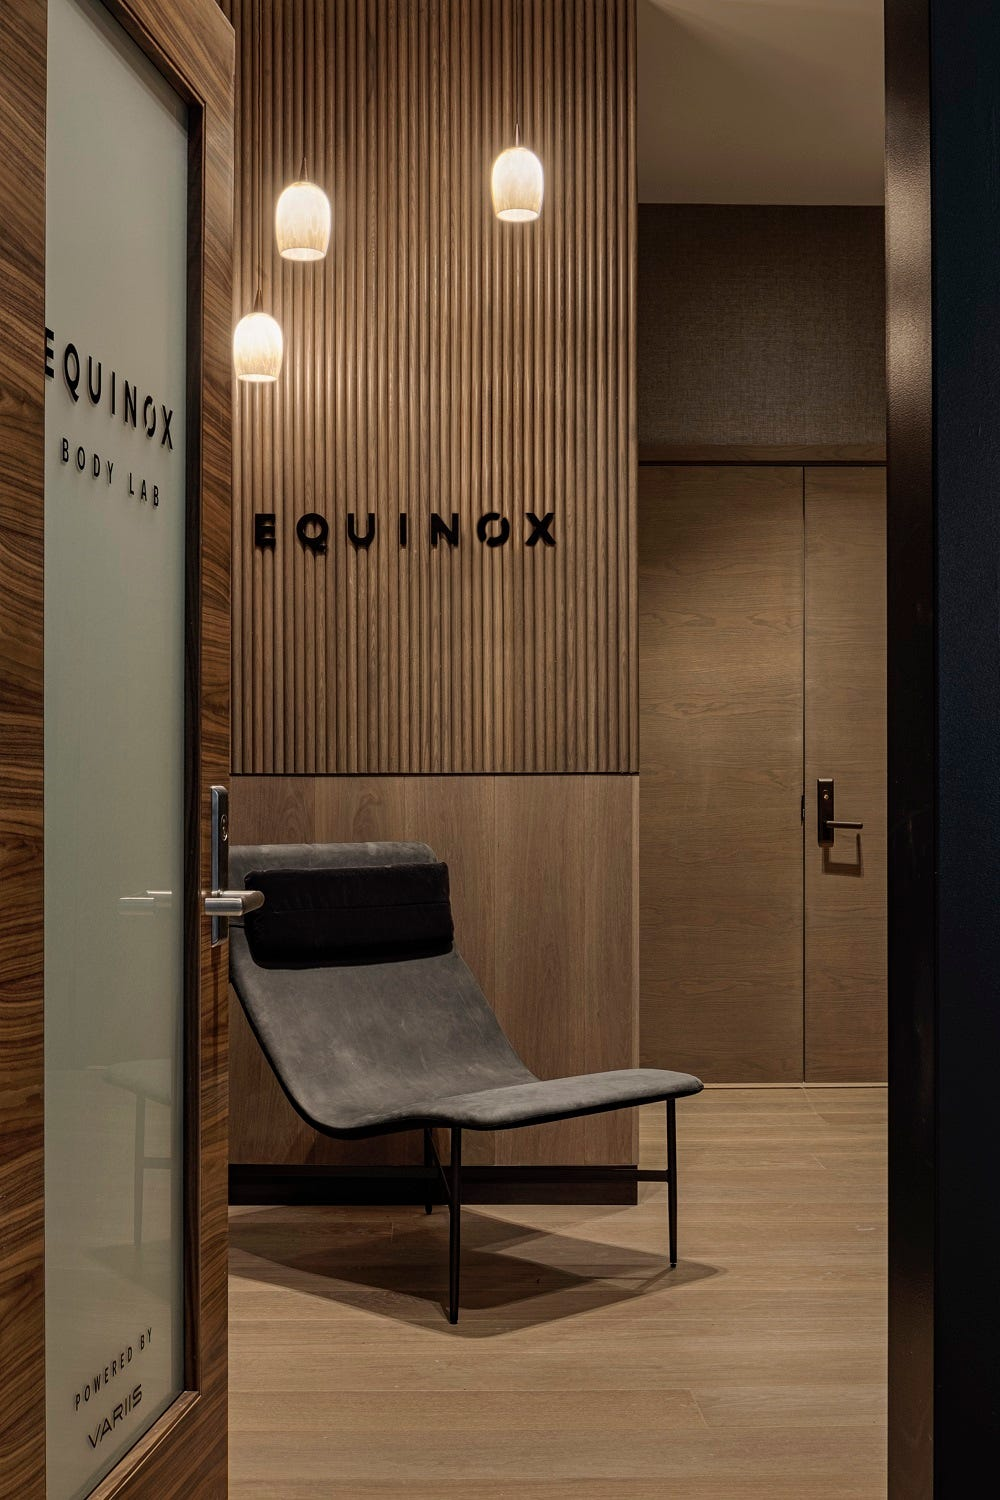 The Lounge Will Also Feature An Eqxuinox Body Lab